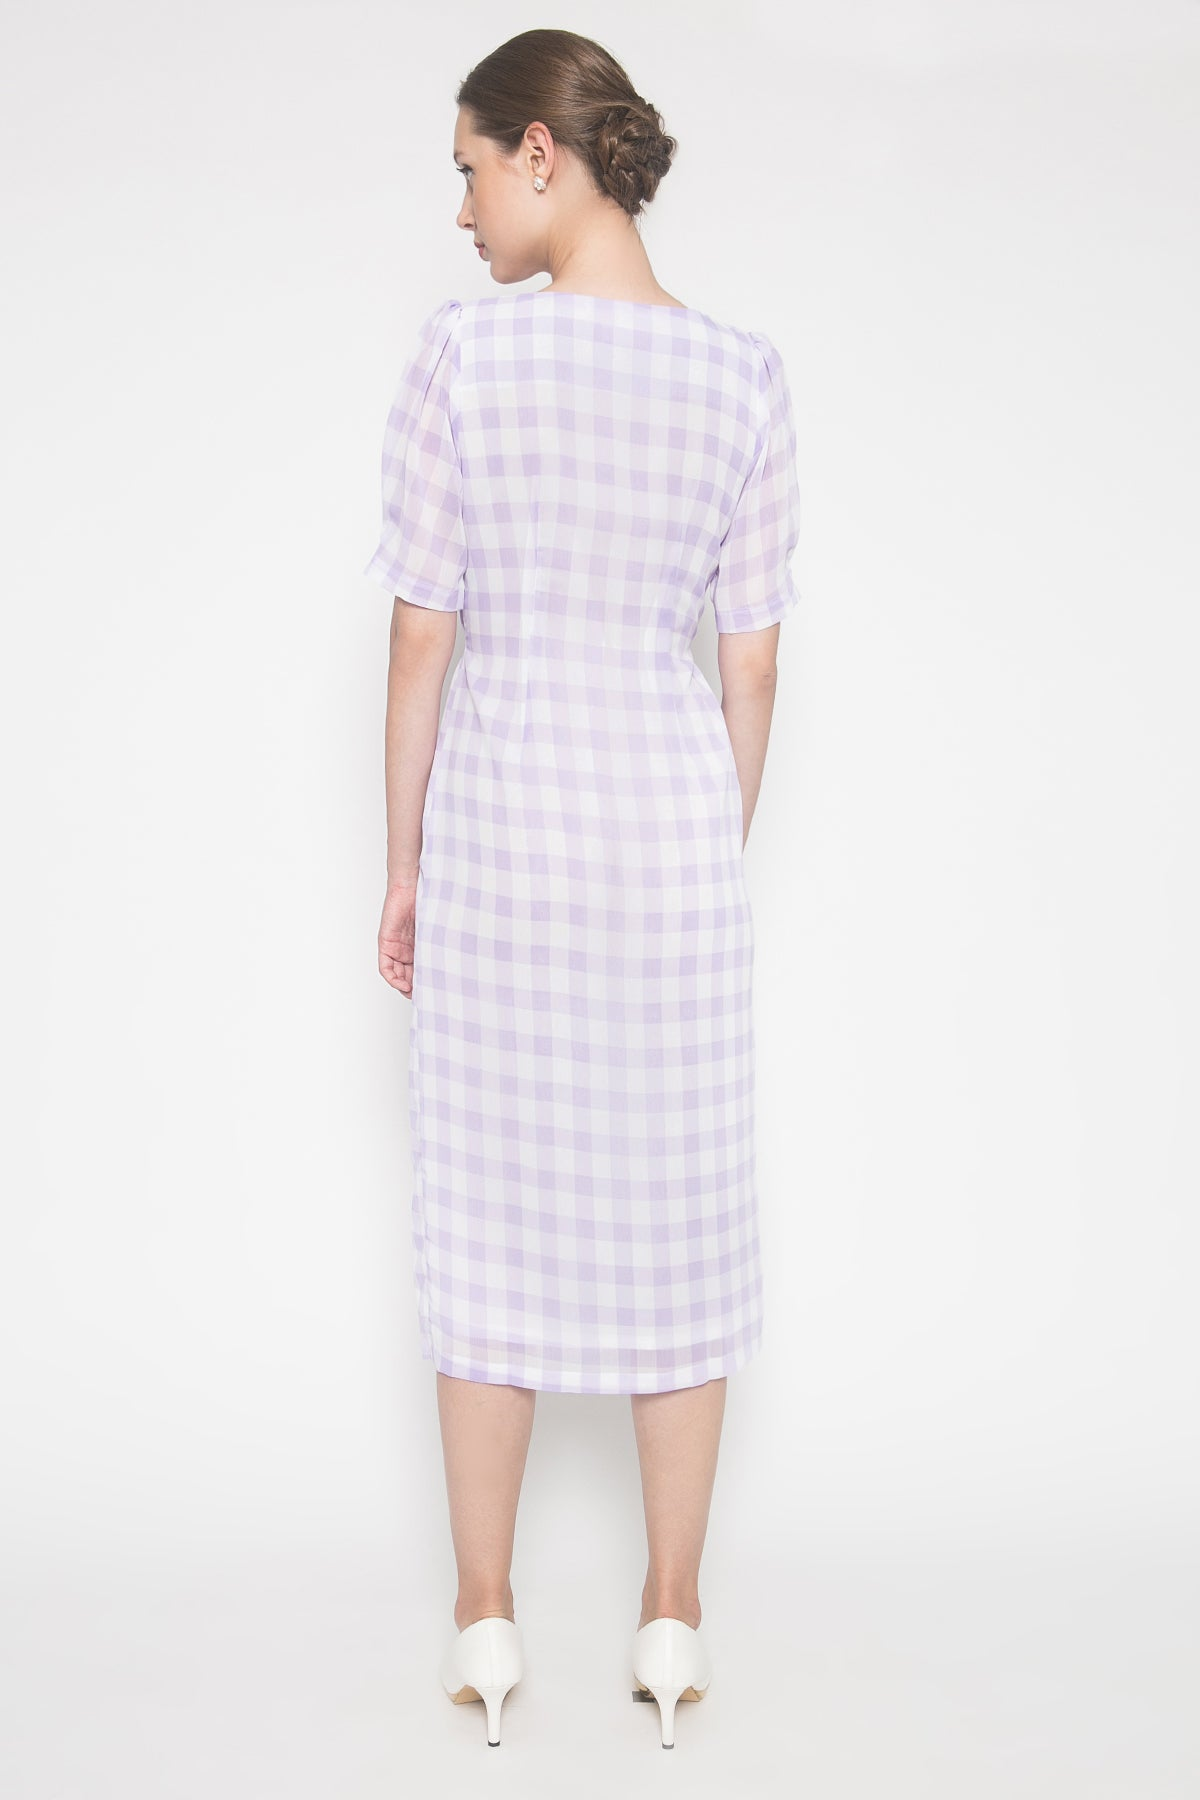 Romane Dress in Lilac Gingham